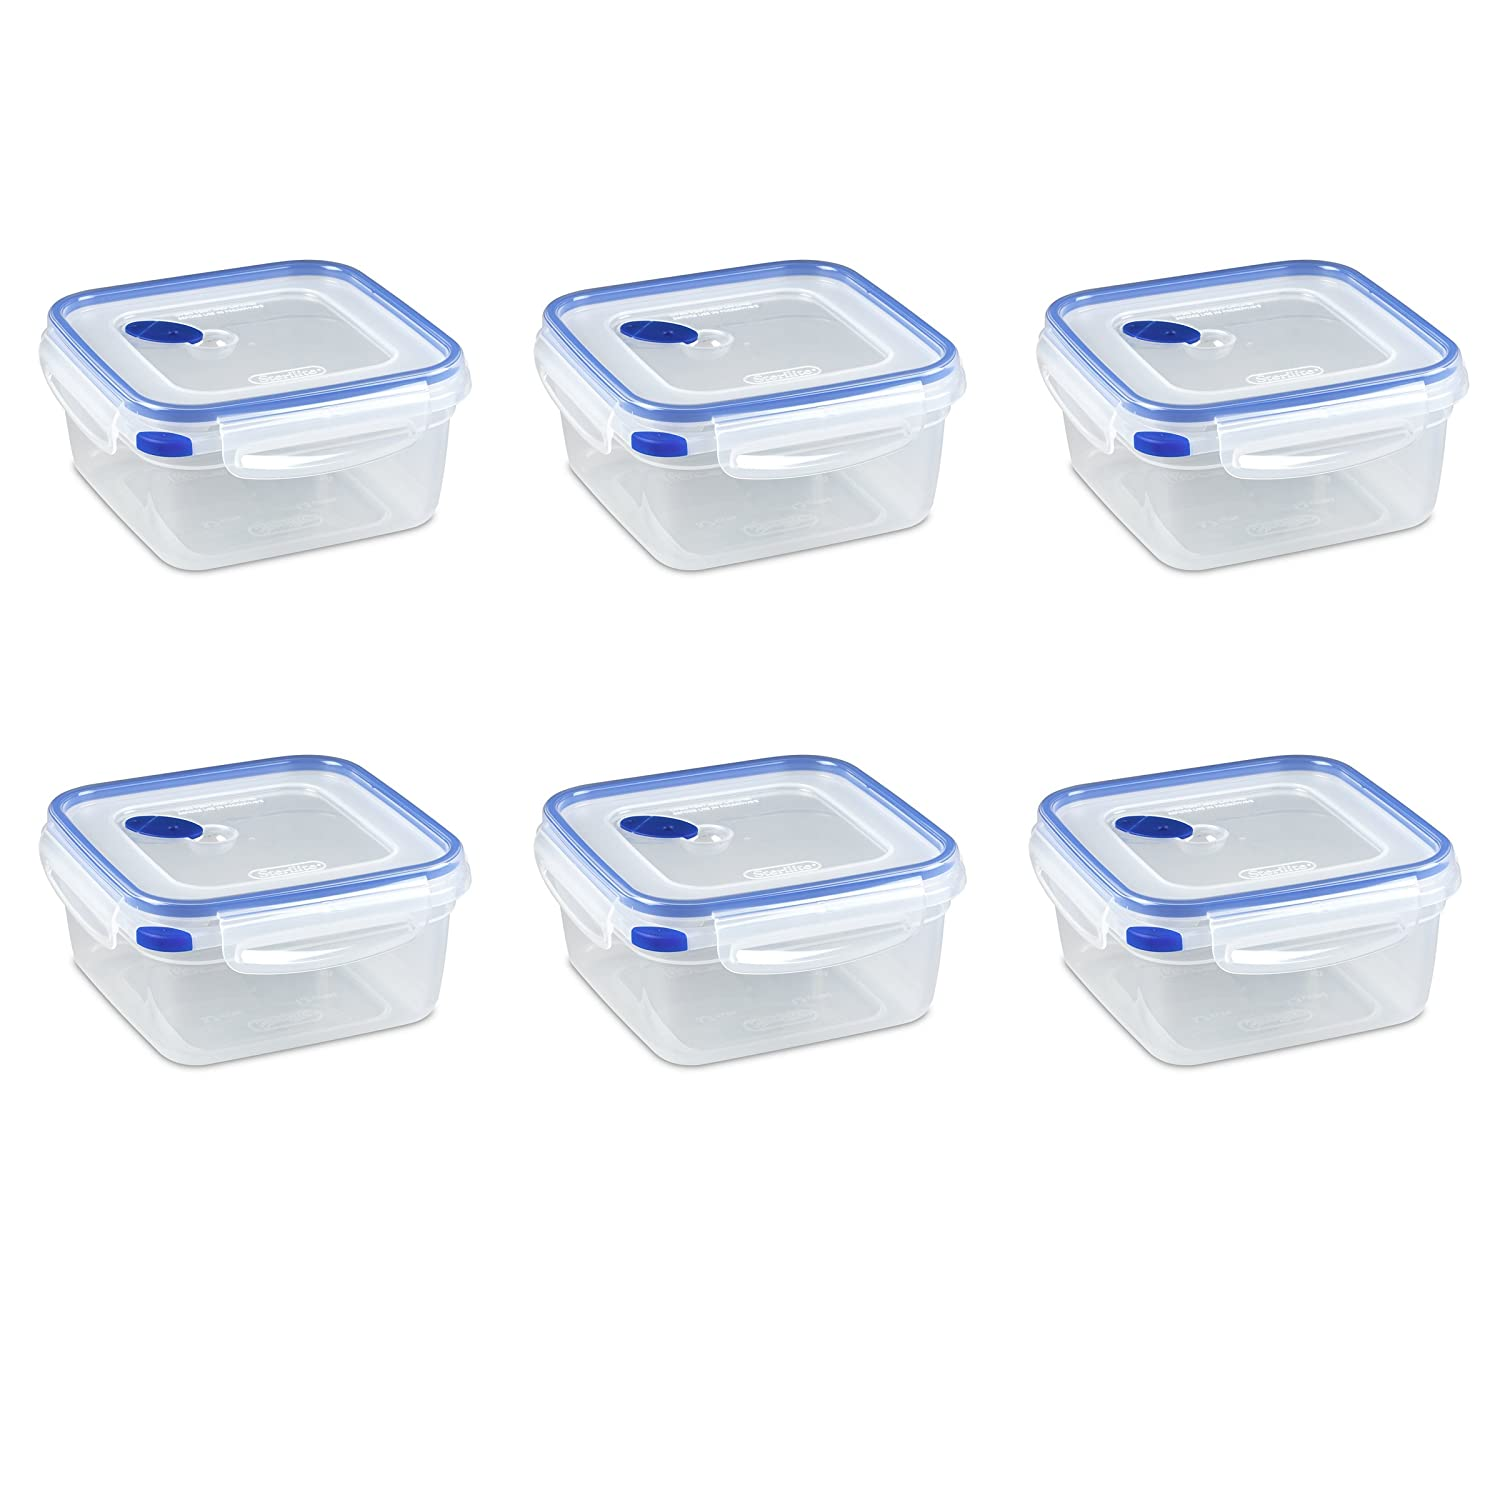 Sterilite 03324706 Ultra-Seal 5.7 Cup Food Storage Container, See-Through Lid & Base with Blue Accents, 6-Pack